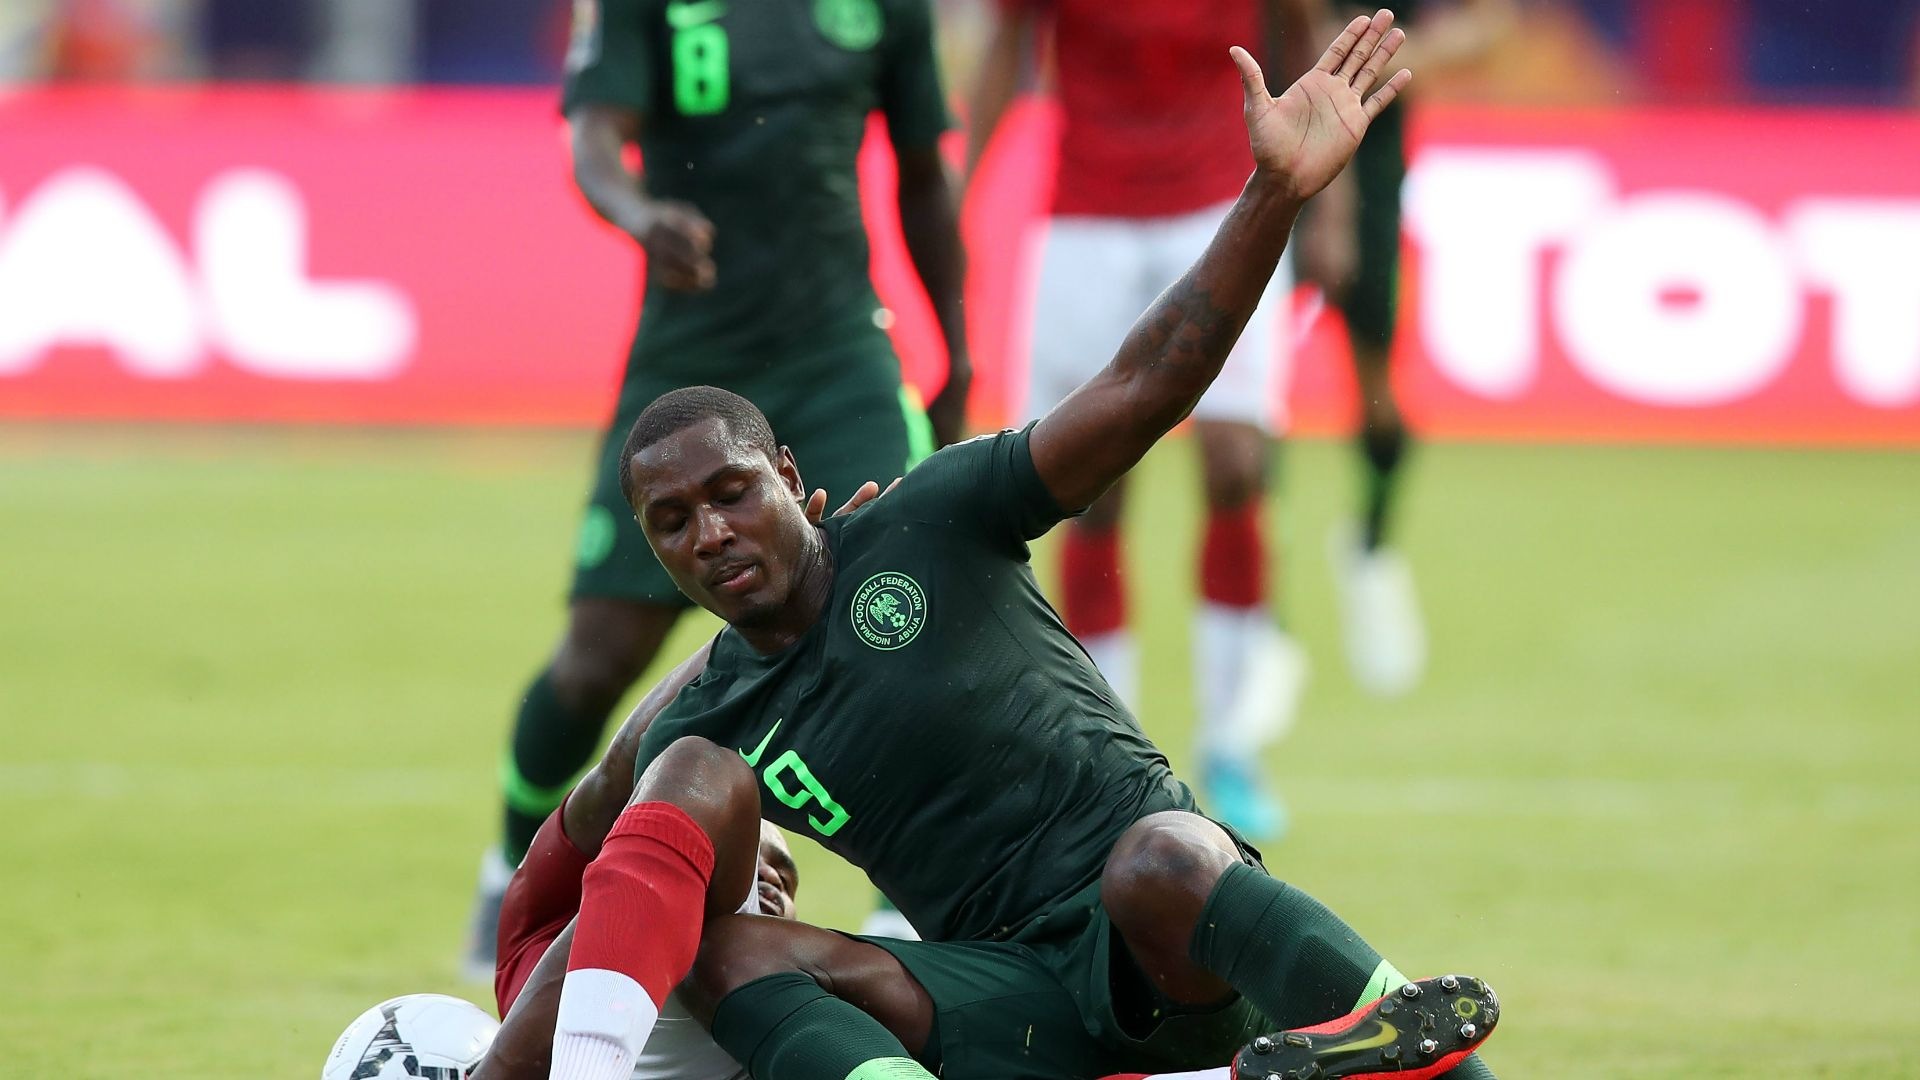 Ighalo Eagles 59a2df850f4 - AFCON 2019: South Africa coach reveals plan to stop Ighalo, speaks on beating Nigeria again